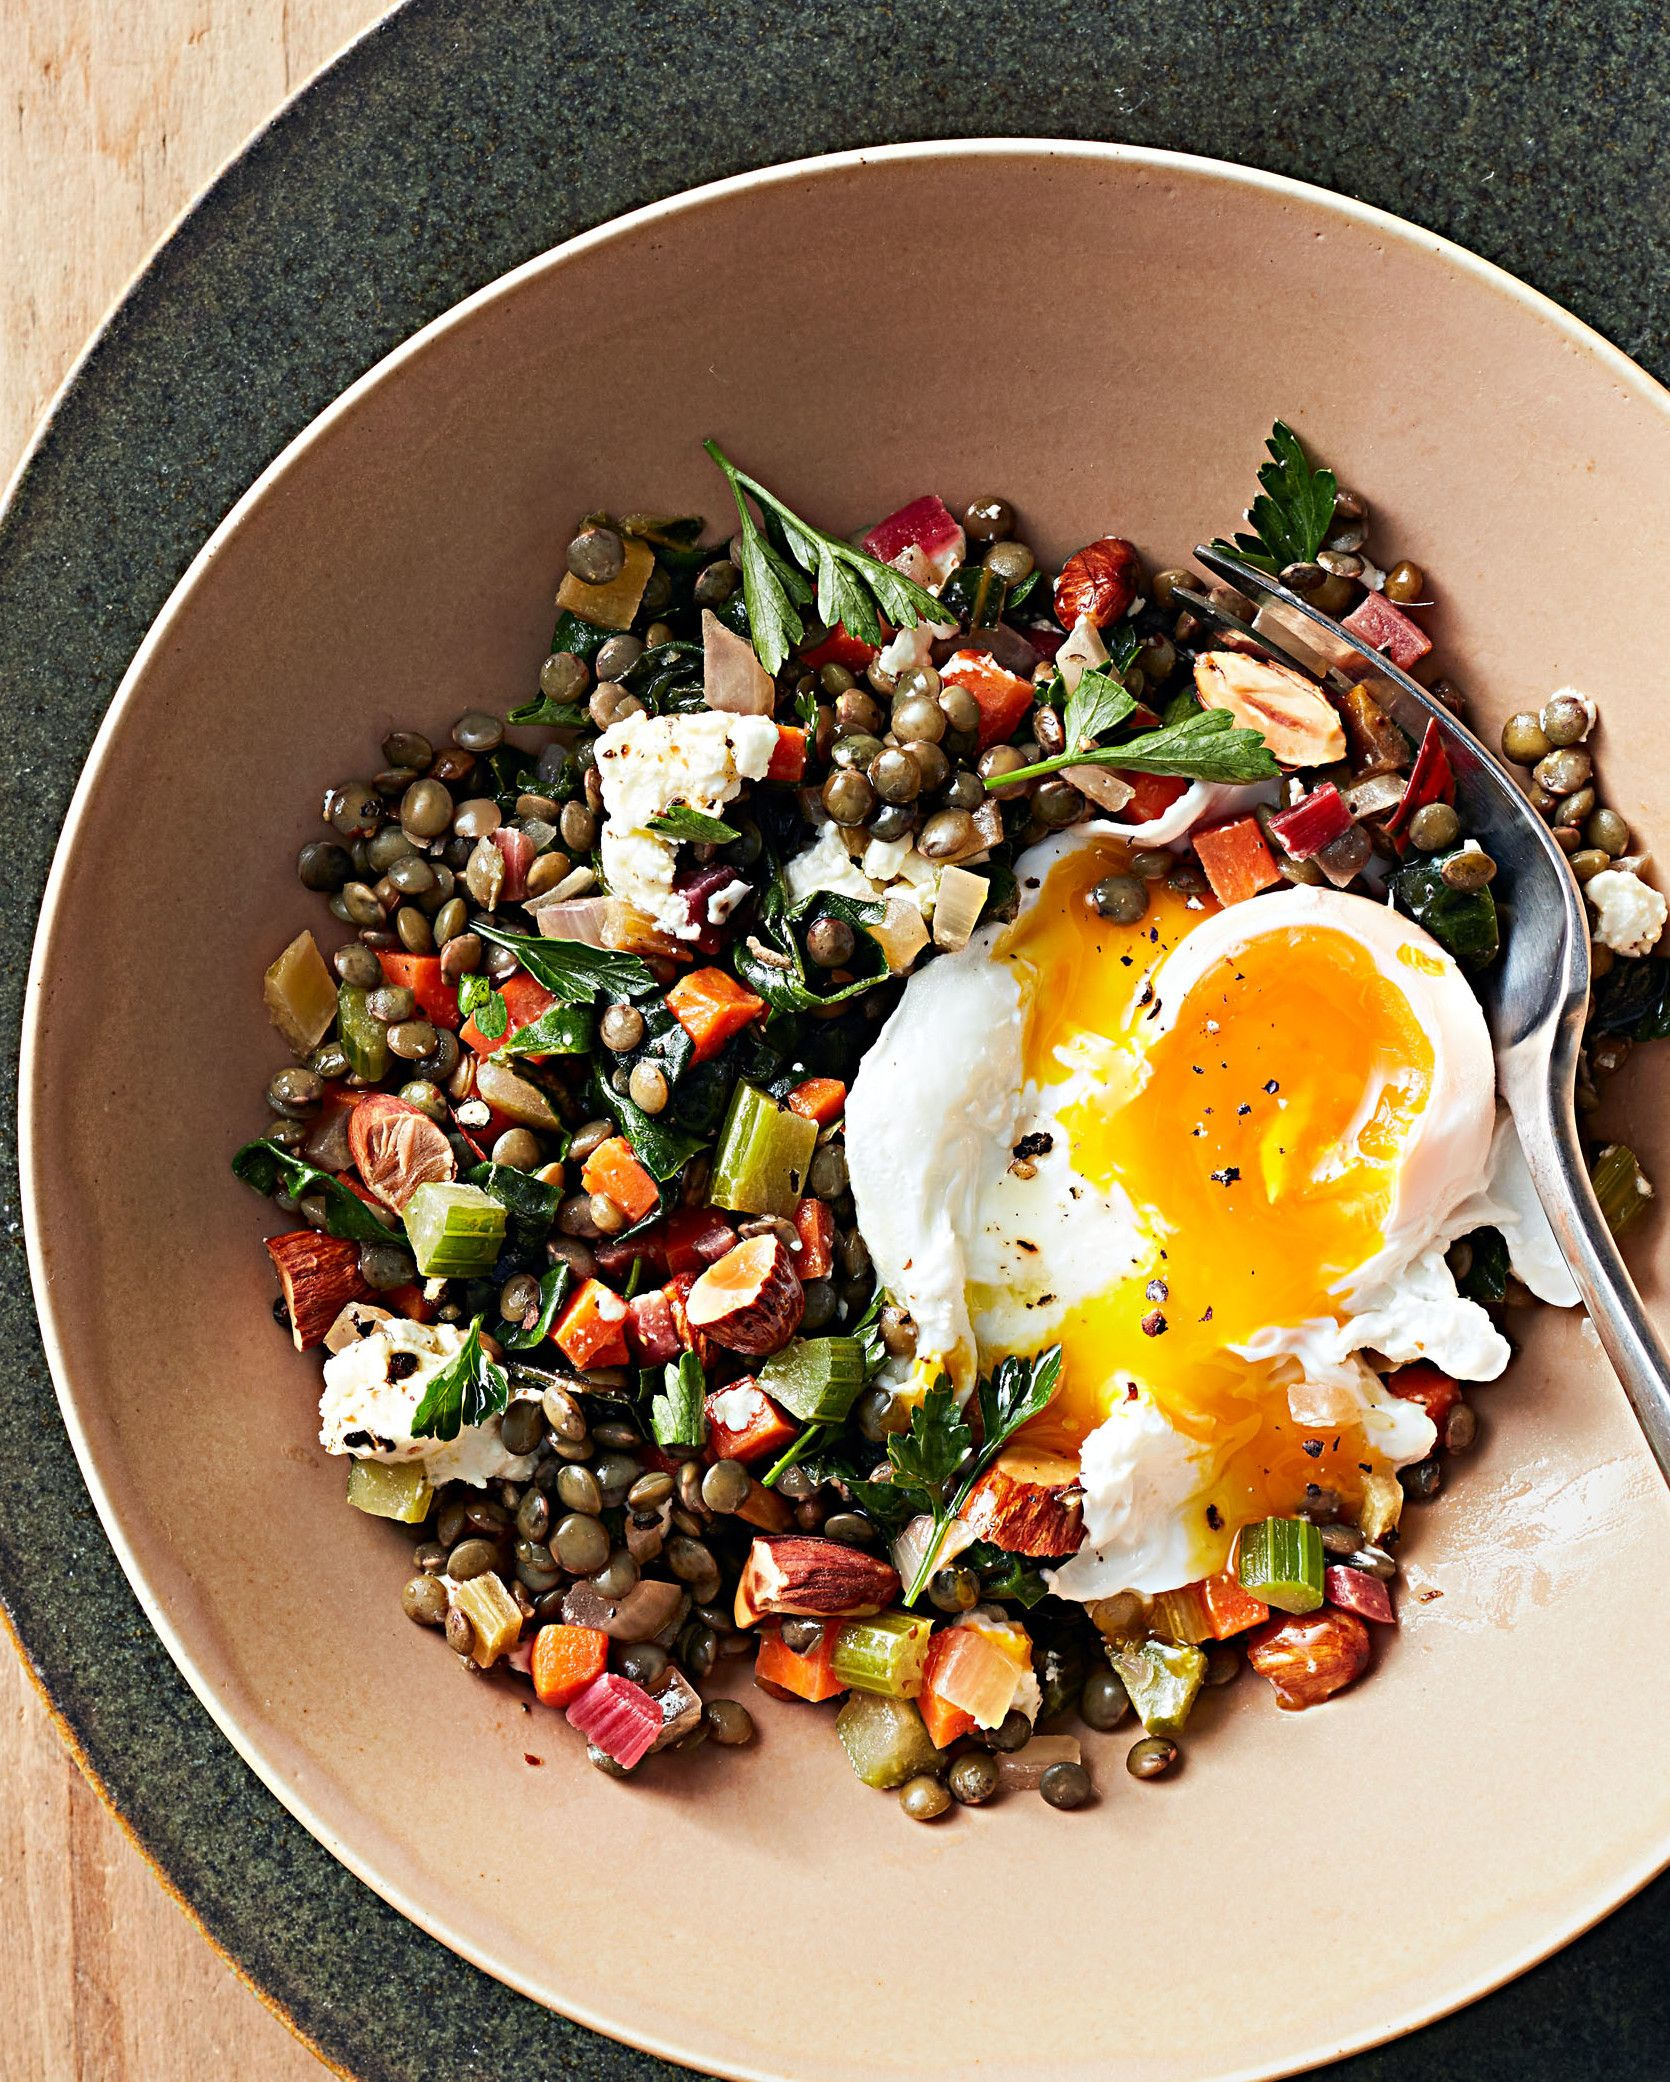 Warm Lentil Salad With Poached Eggs Recipe Recipe Lentil Salad Lentil Recipes Poached Egg Recipe